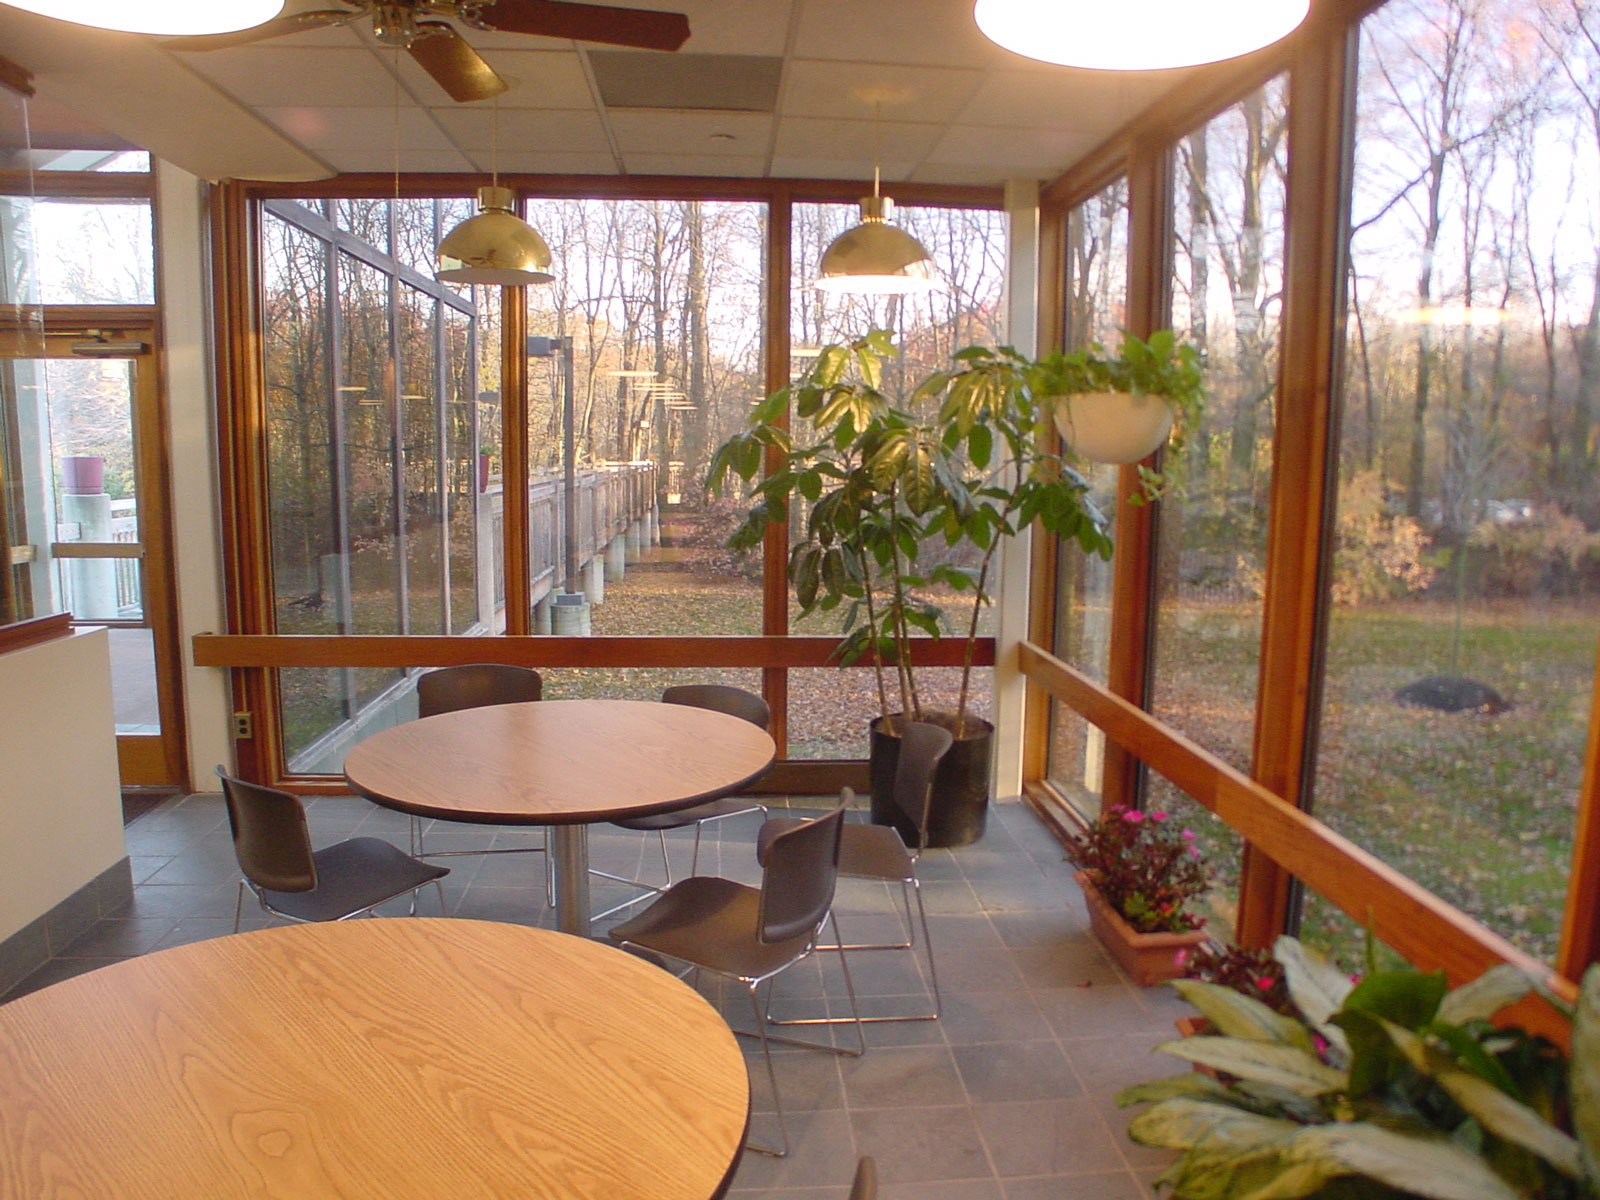 Since many will enjoy the cafeteria, a connection to the beautiful site through full height windows can still be enjoyed by many. Overhangs and the nearby woods itself provide natural shading and sound panels in the ceiling control noise.